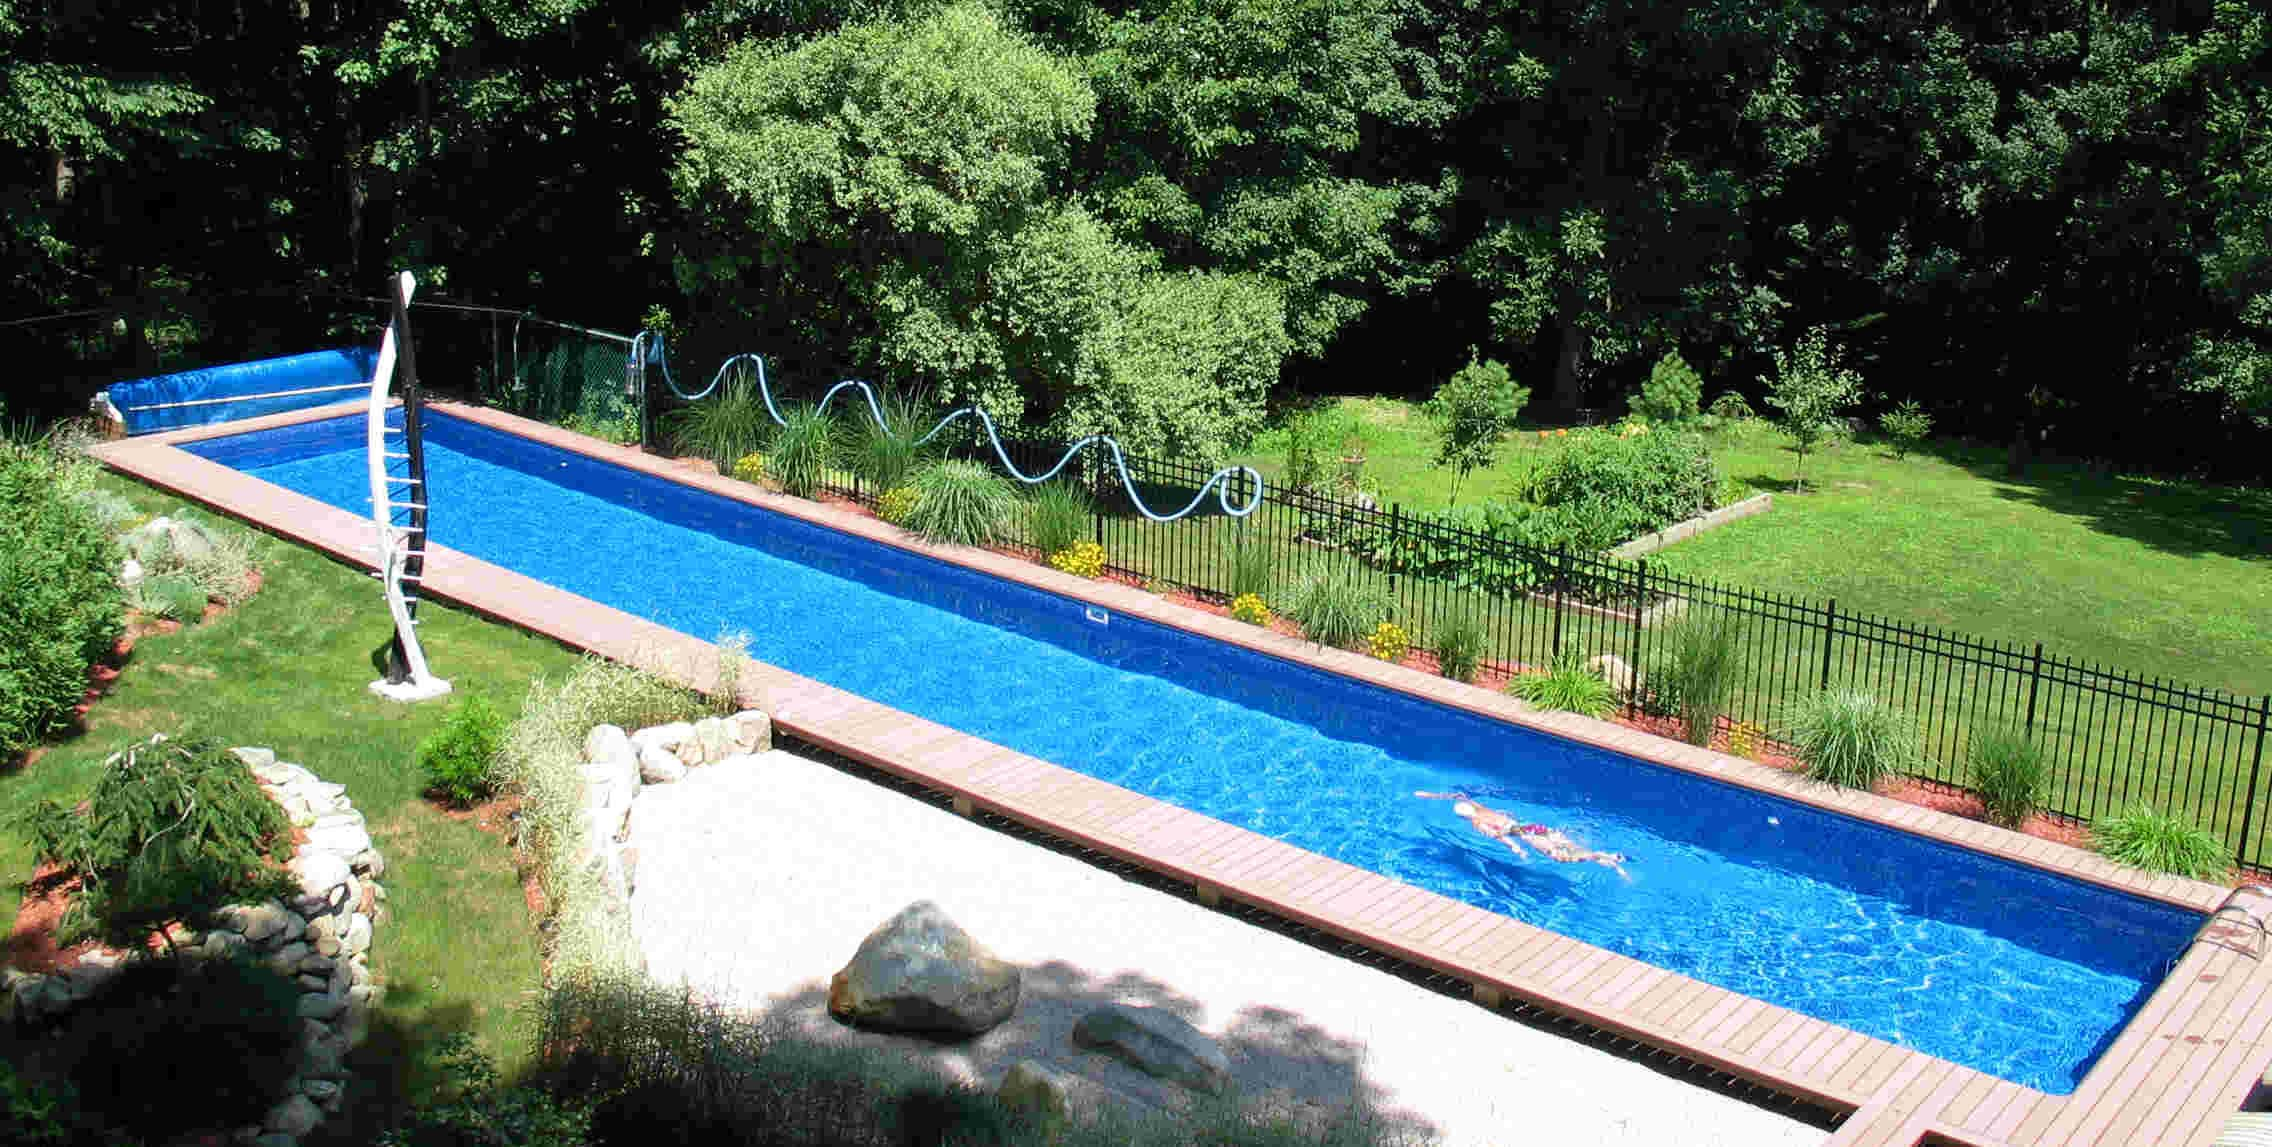 Diy inground swimming pool backyard design ideas for Building an inground pool